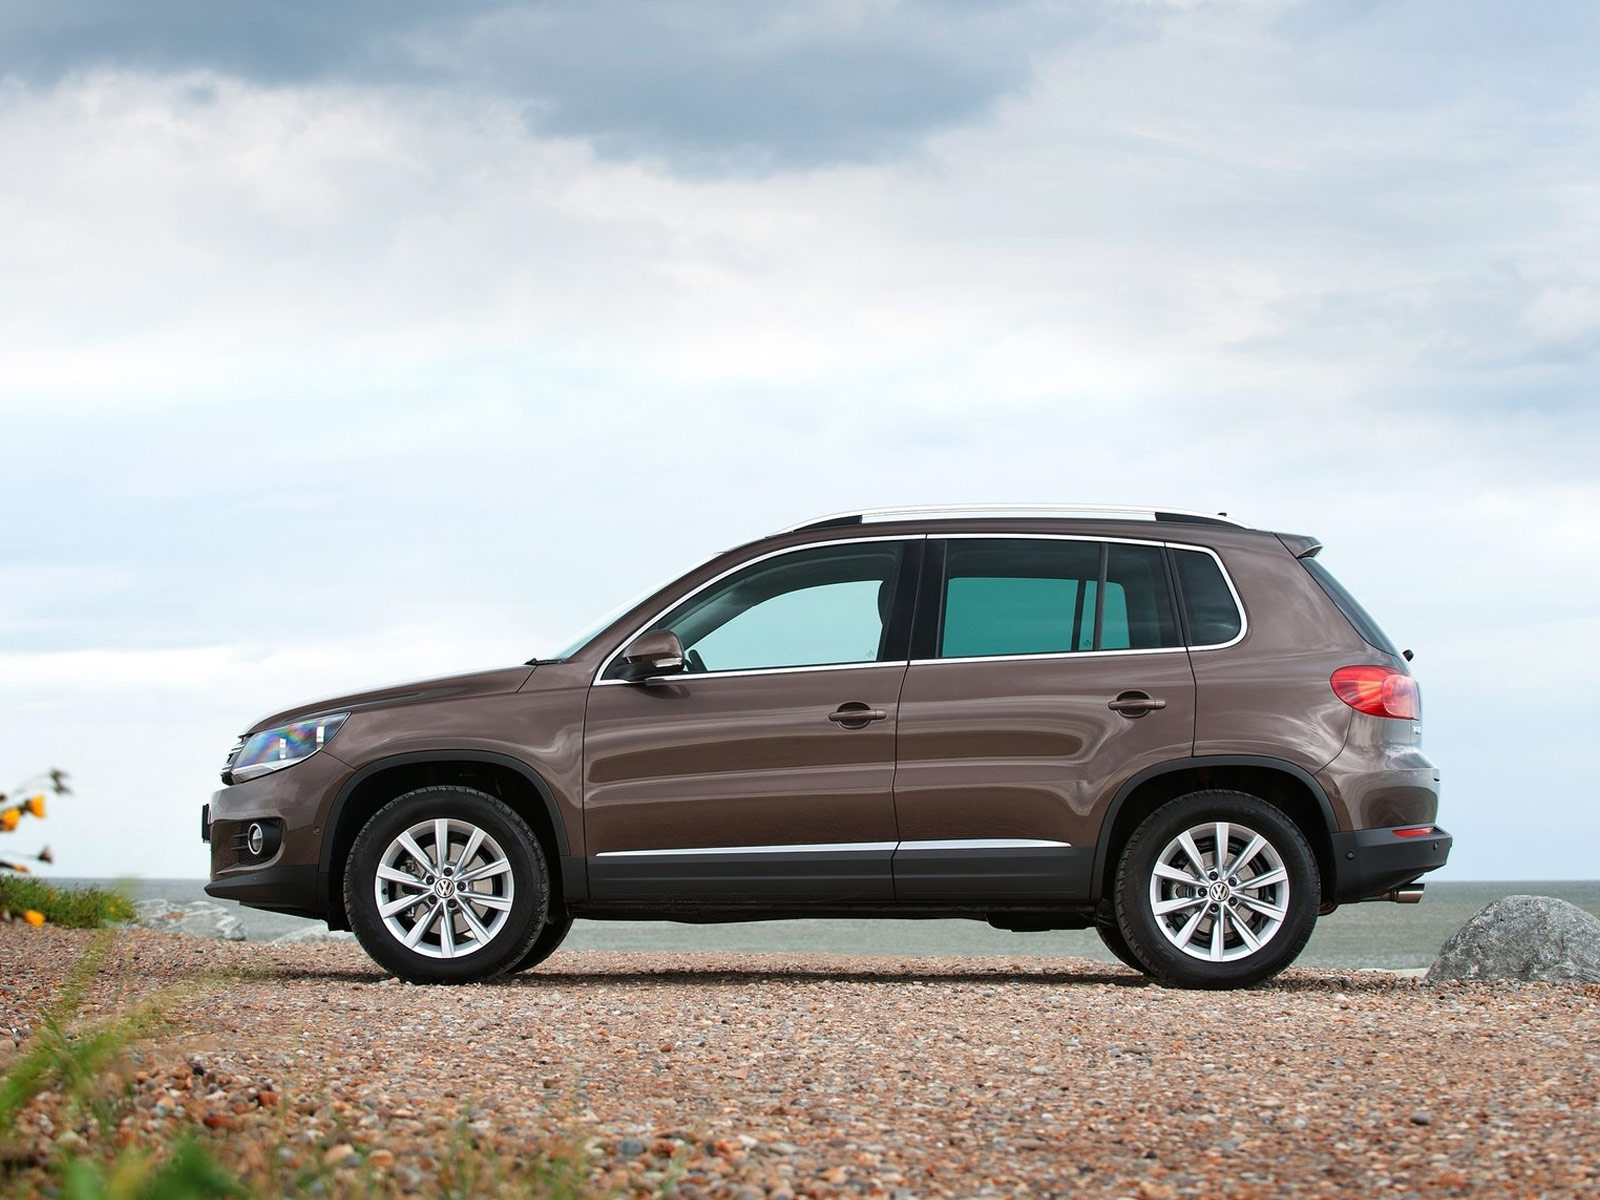 2012 vw tiguan volkswagen wallpapers review features. Black Bedroom Furniture Sets. Home Design Ideas